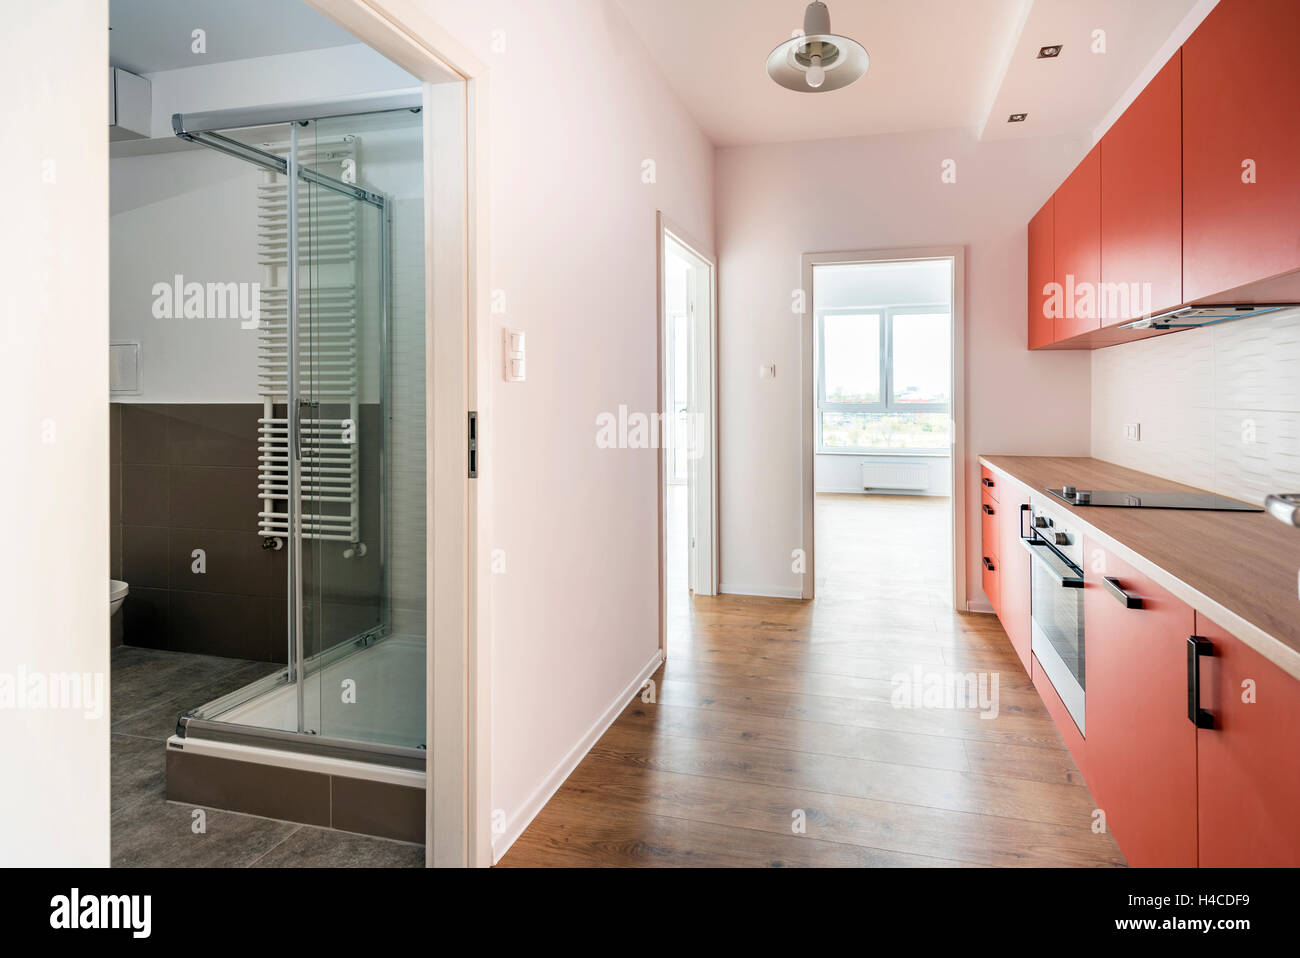 New apartment empty room with domestic kitchen and bathroom Stock Photo 123205245  Alamy